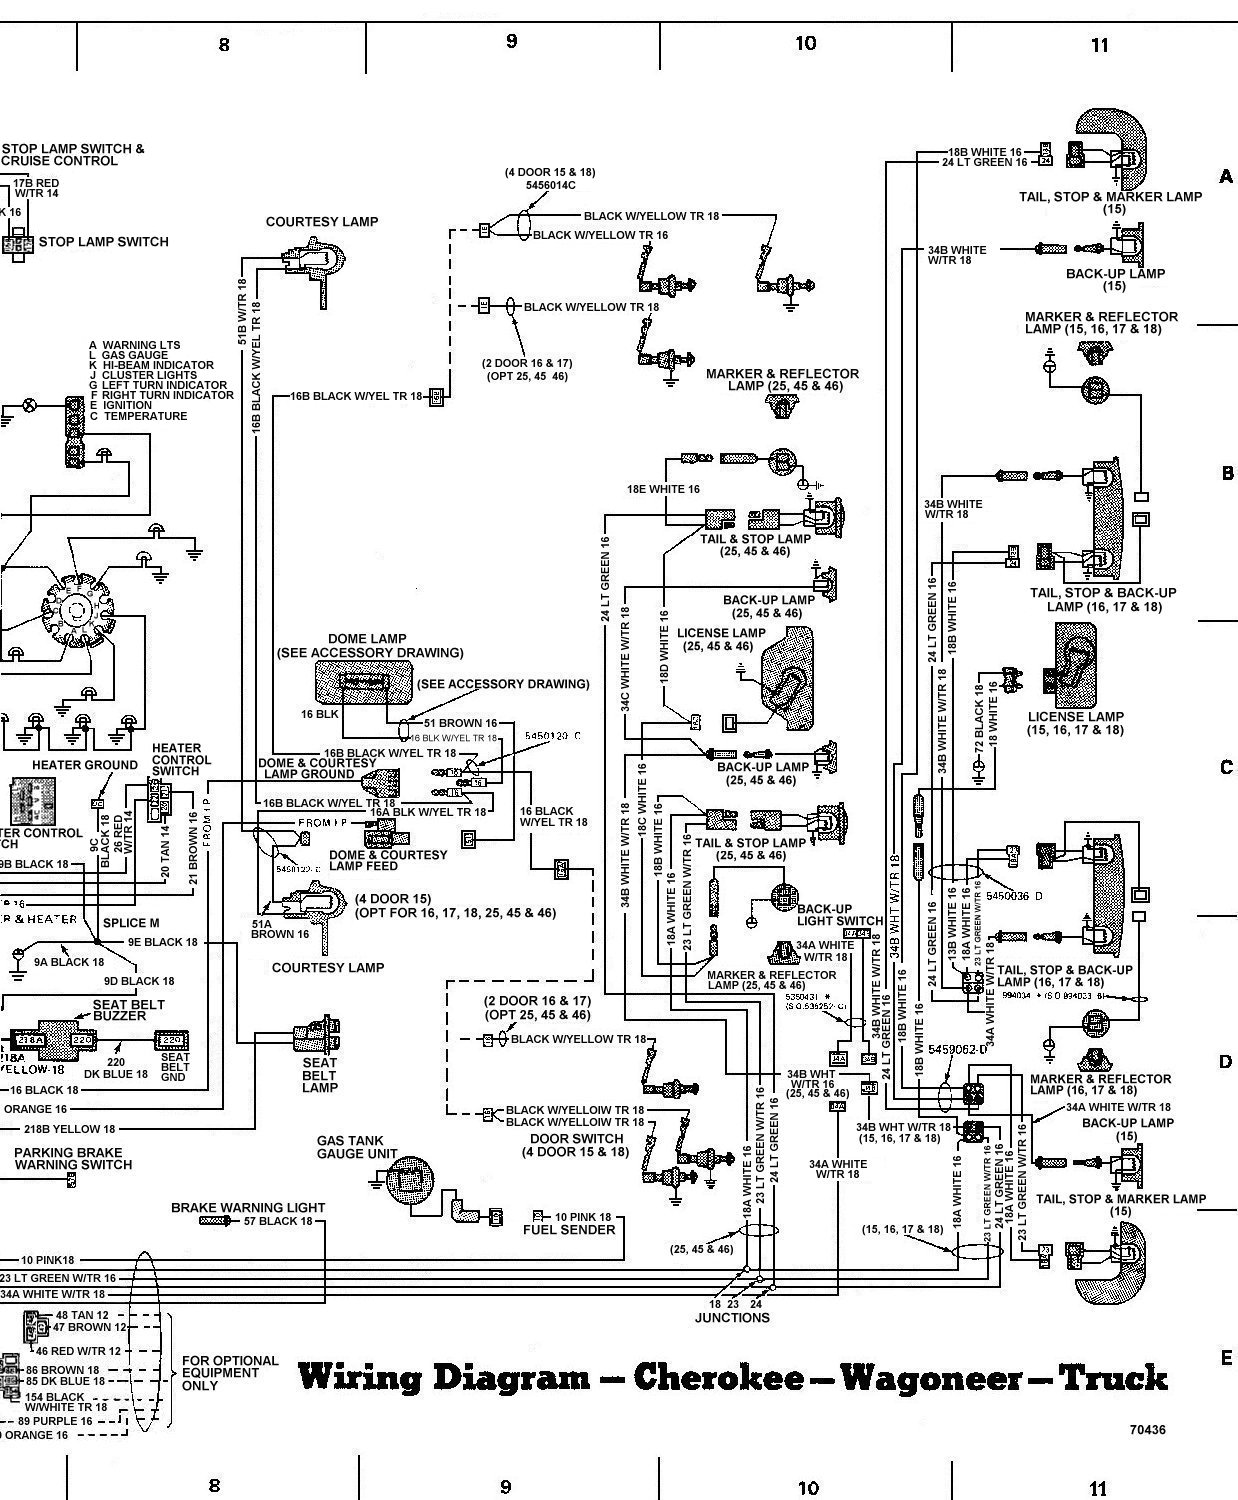 2008 jeep commander wiring schematic